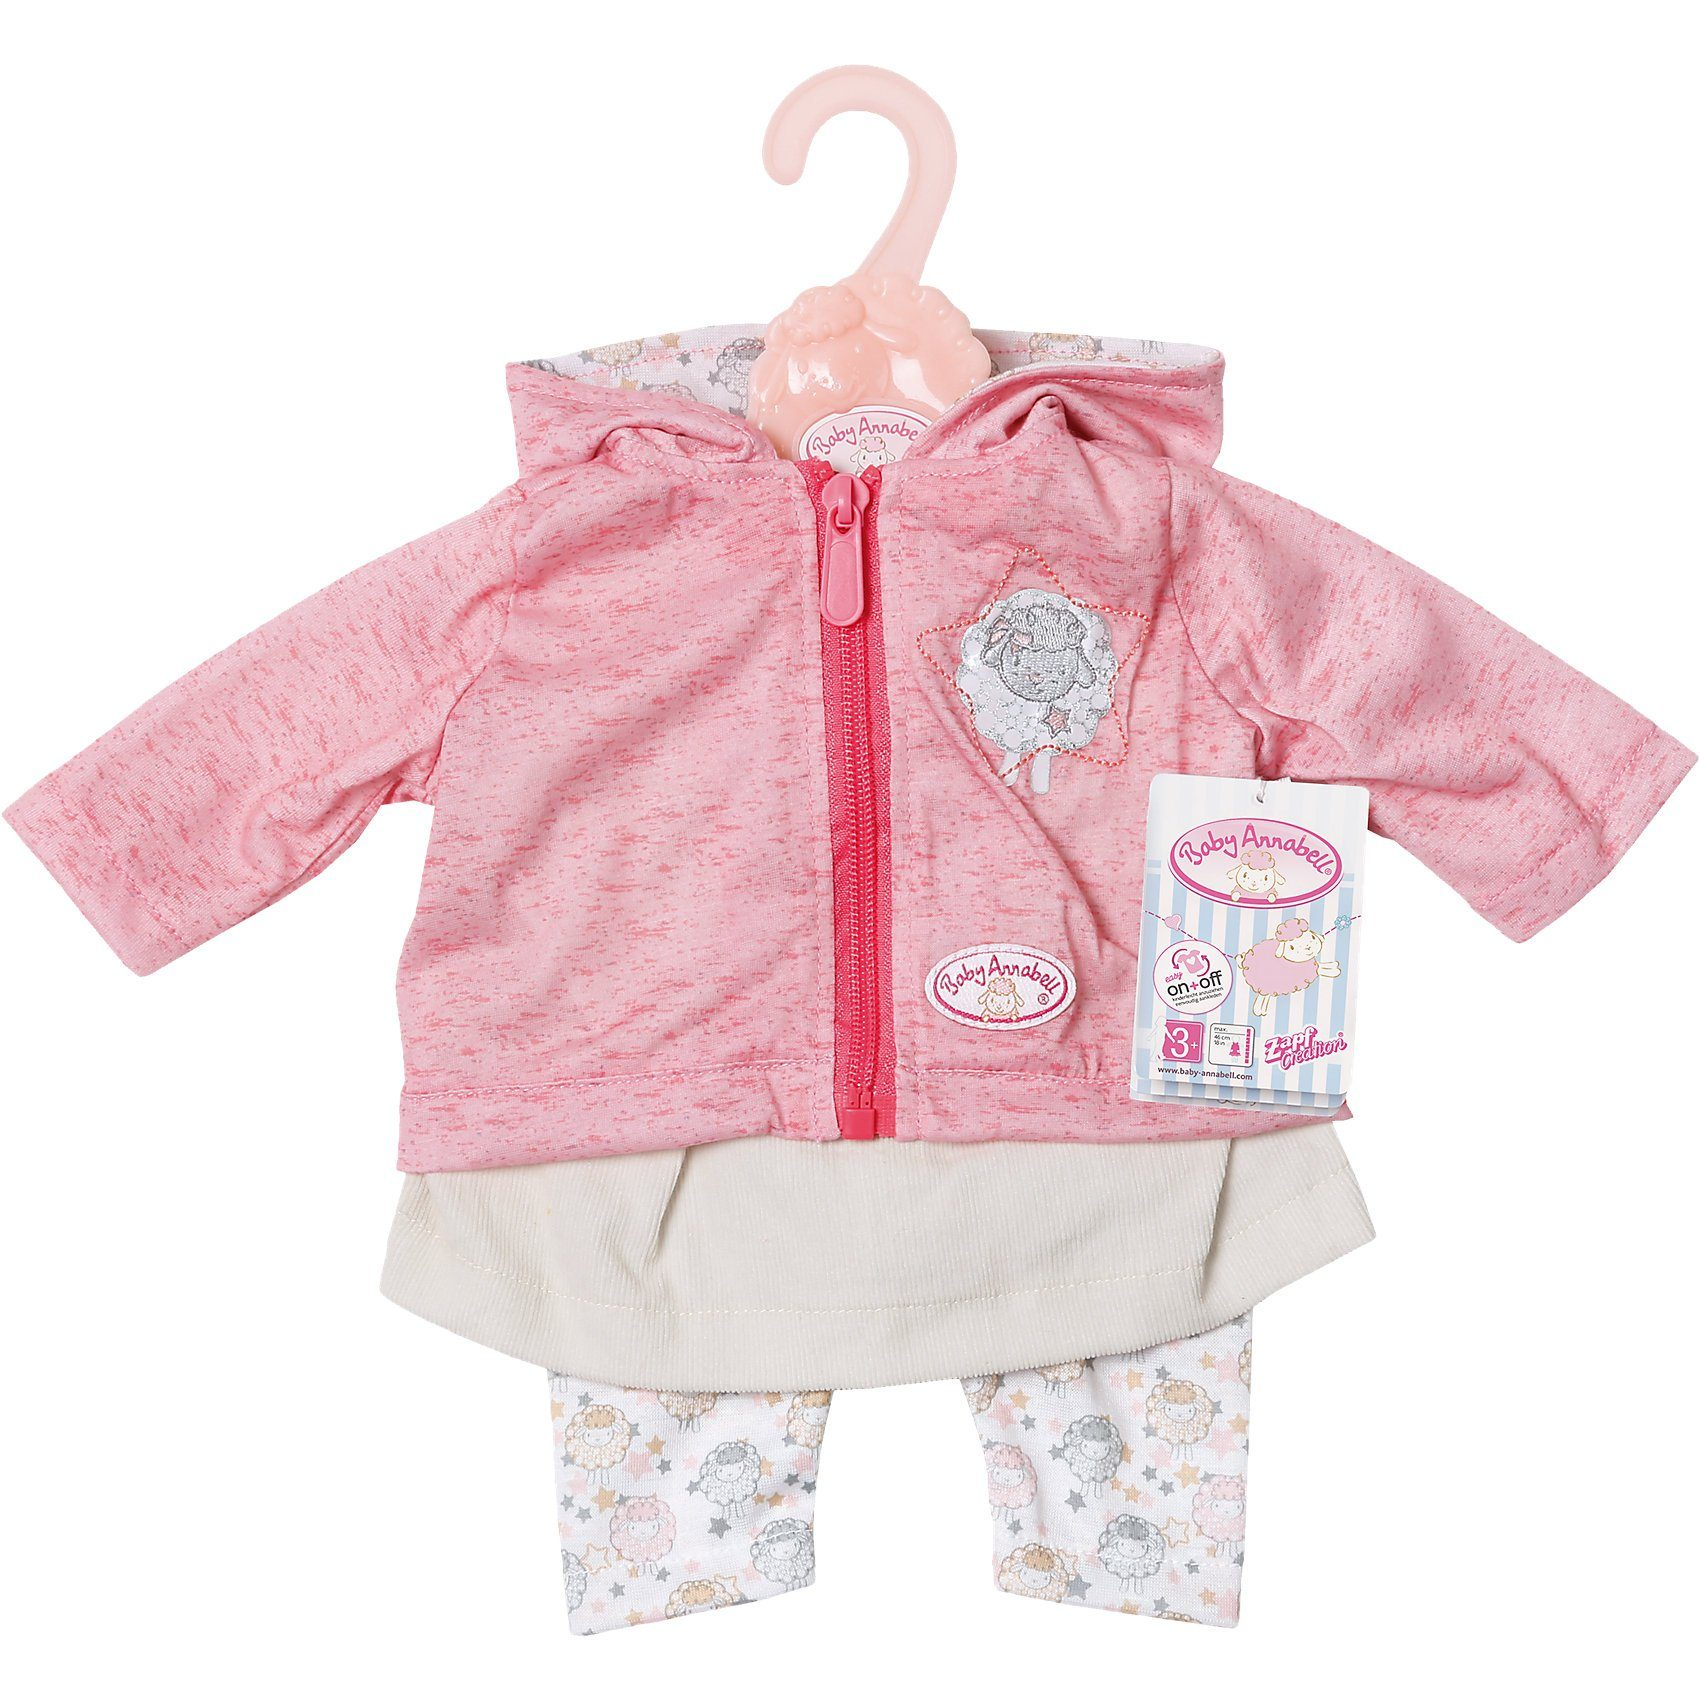 Zapf Creation® Baby Annabell® Puppenkleidung Outfit mit Jacke, 46 cm